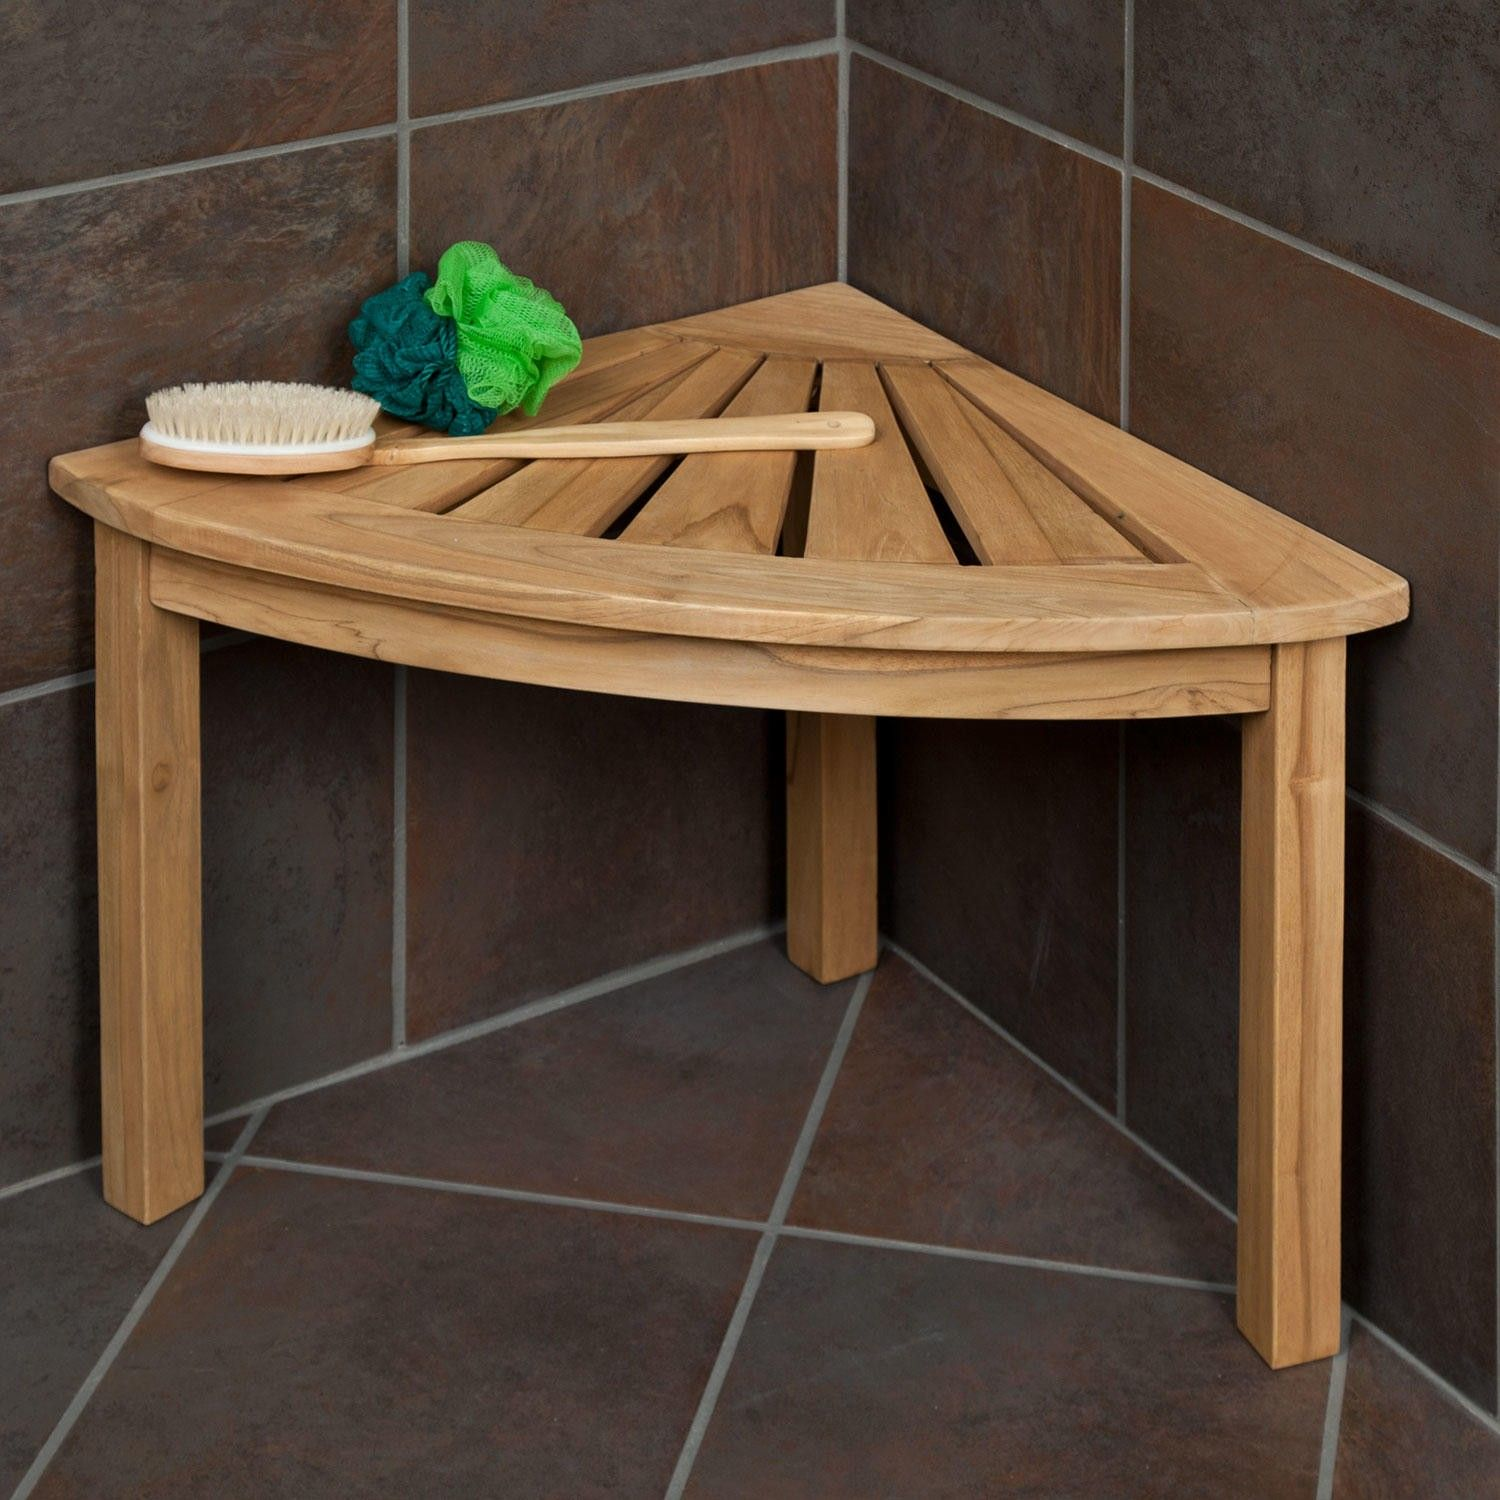 Teak Corner Shower Seat Shower Seats Bathroom Accessories